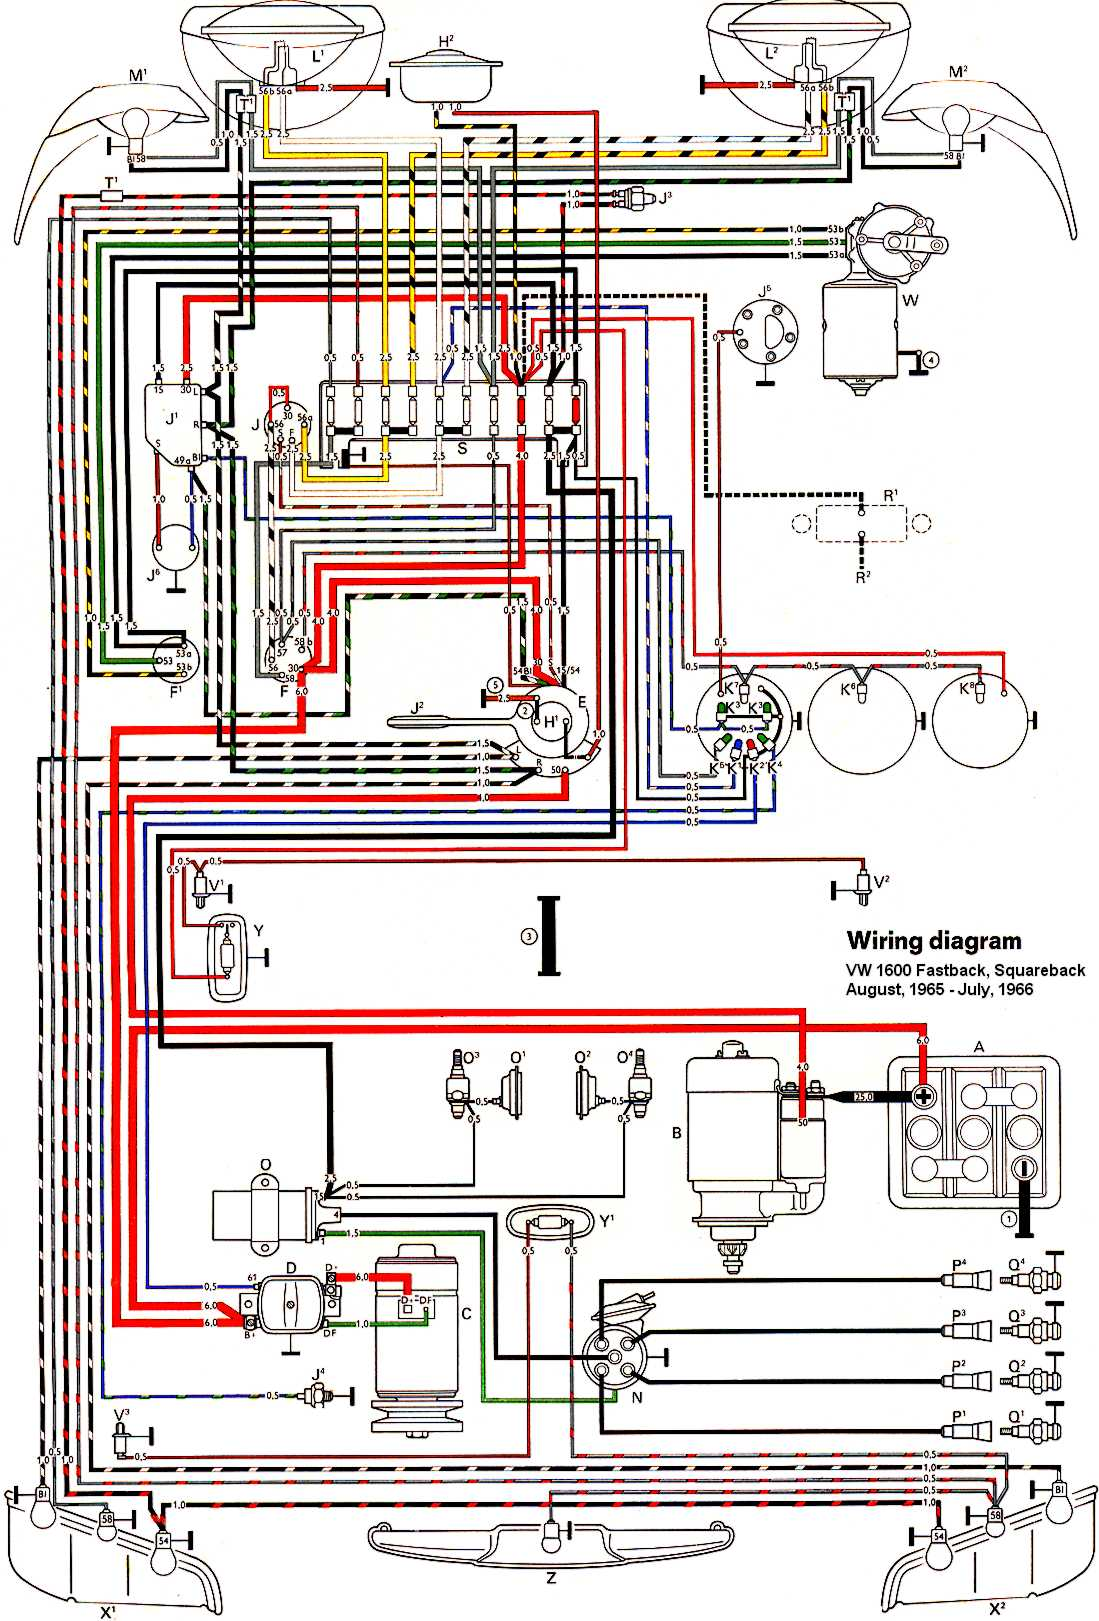 type3_1600_66 vw thing wiring diagram 1974 beetle heater diagram \u2022 wiring 1971 vw bus wiring diagram at aneh.co